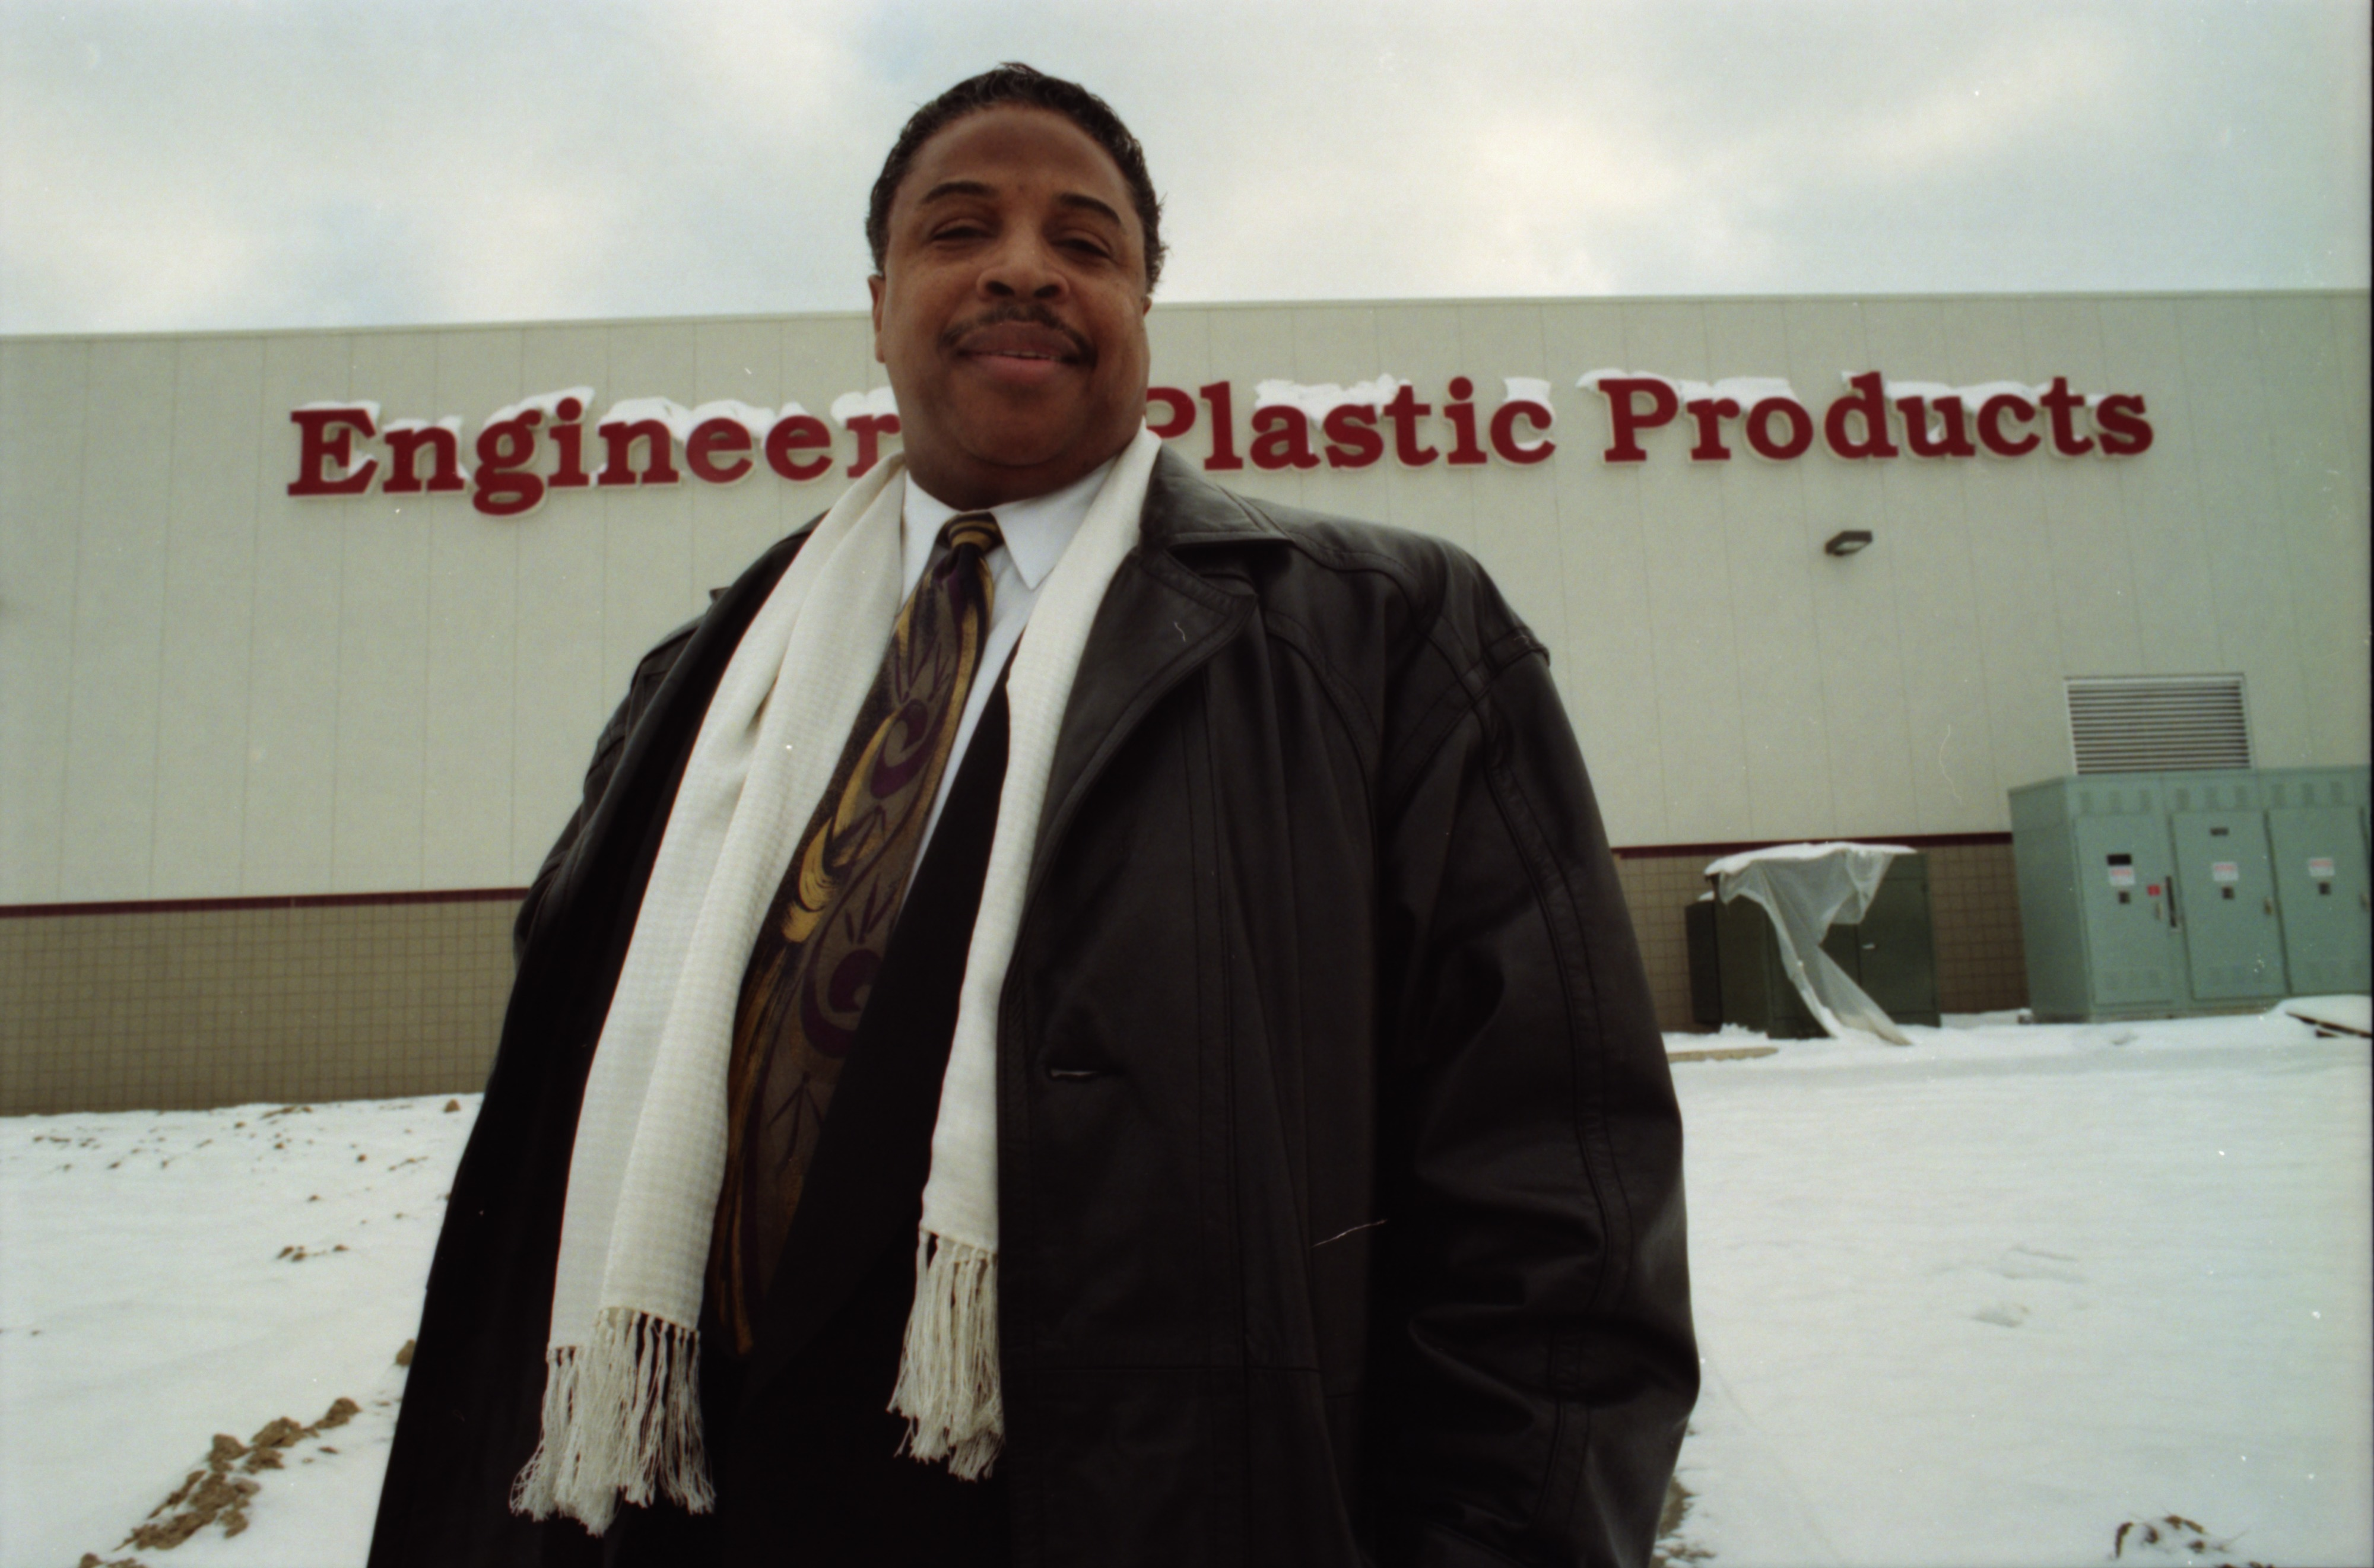 Gerald Edwards Opens Plastics Factory in Ypsilanti, January 1995 image